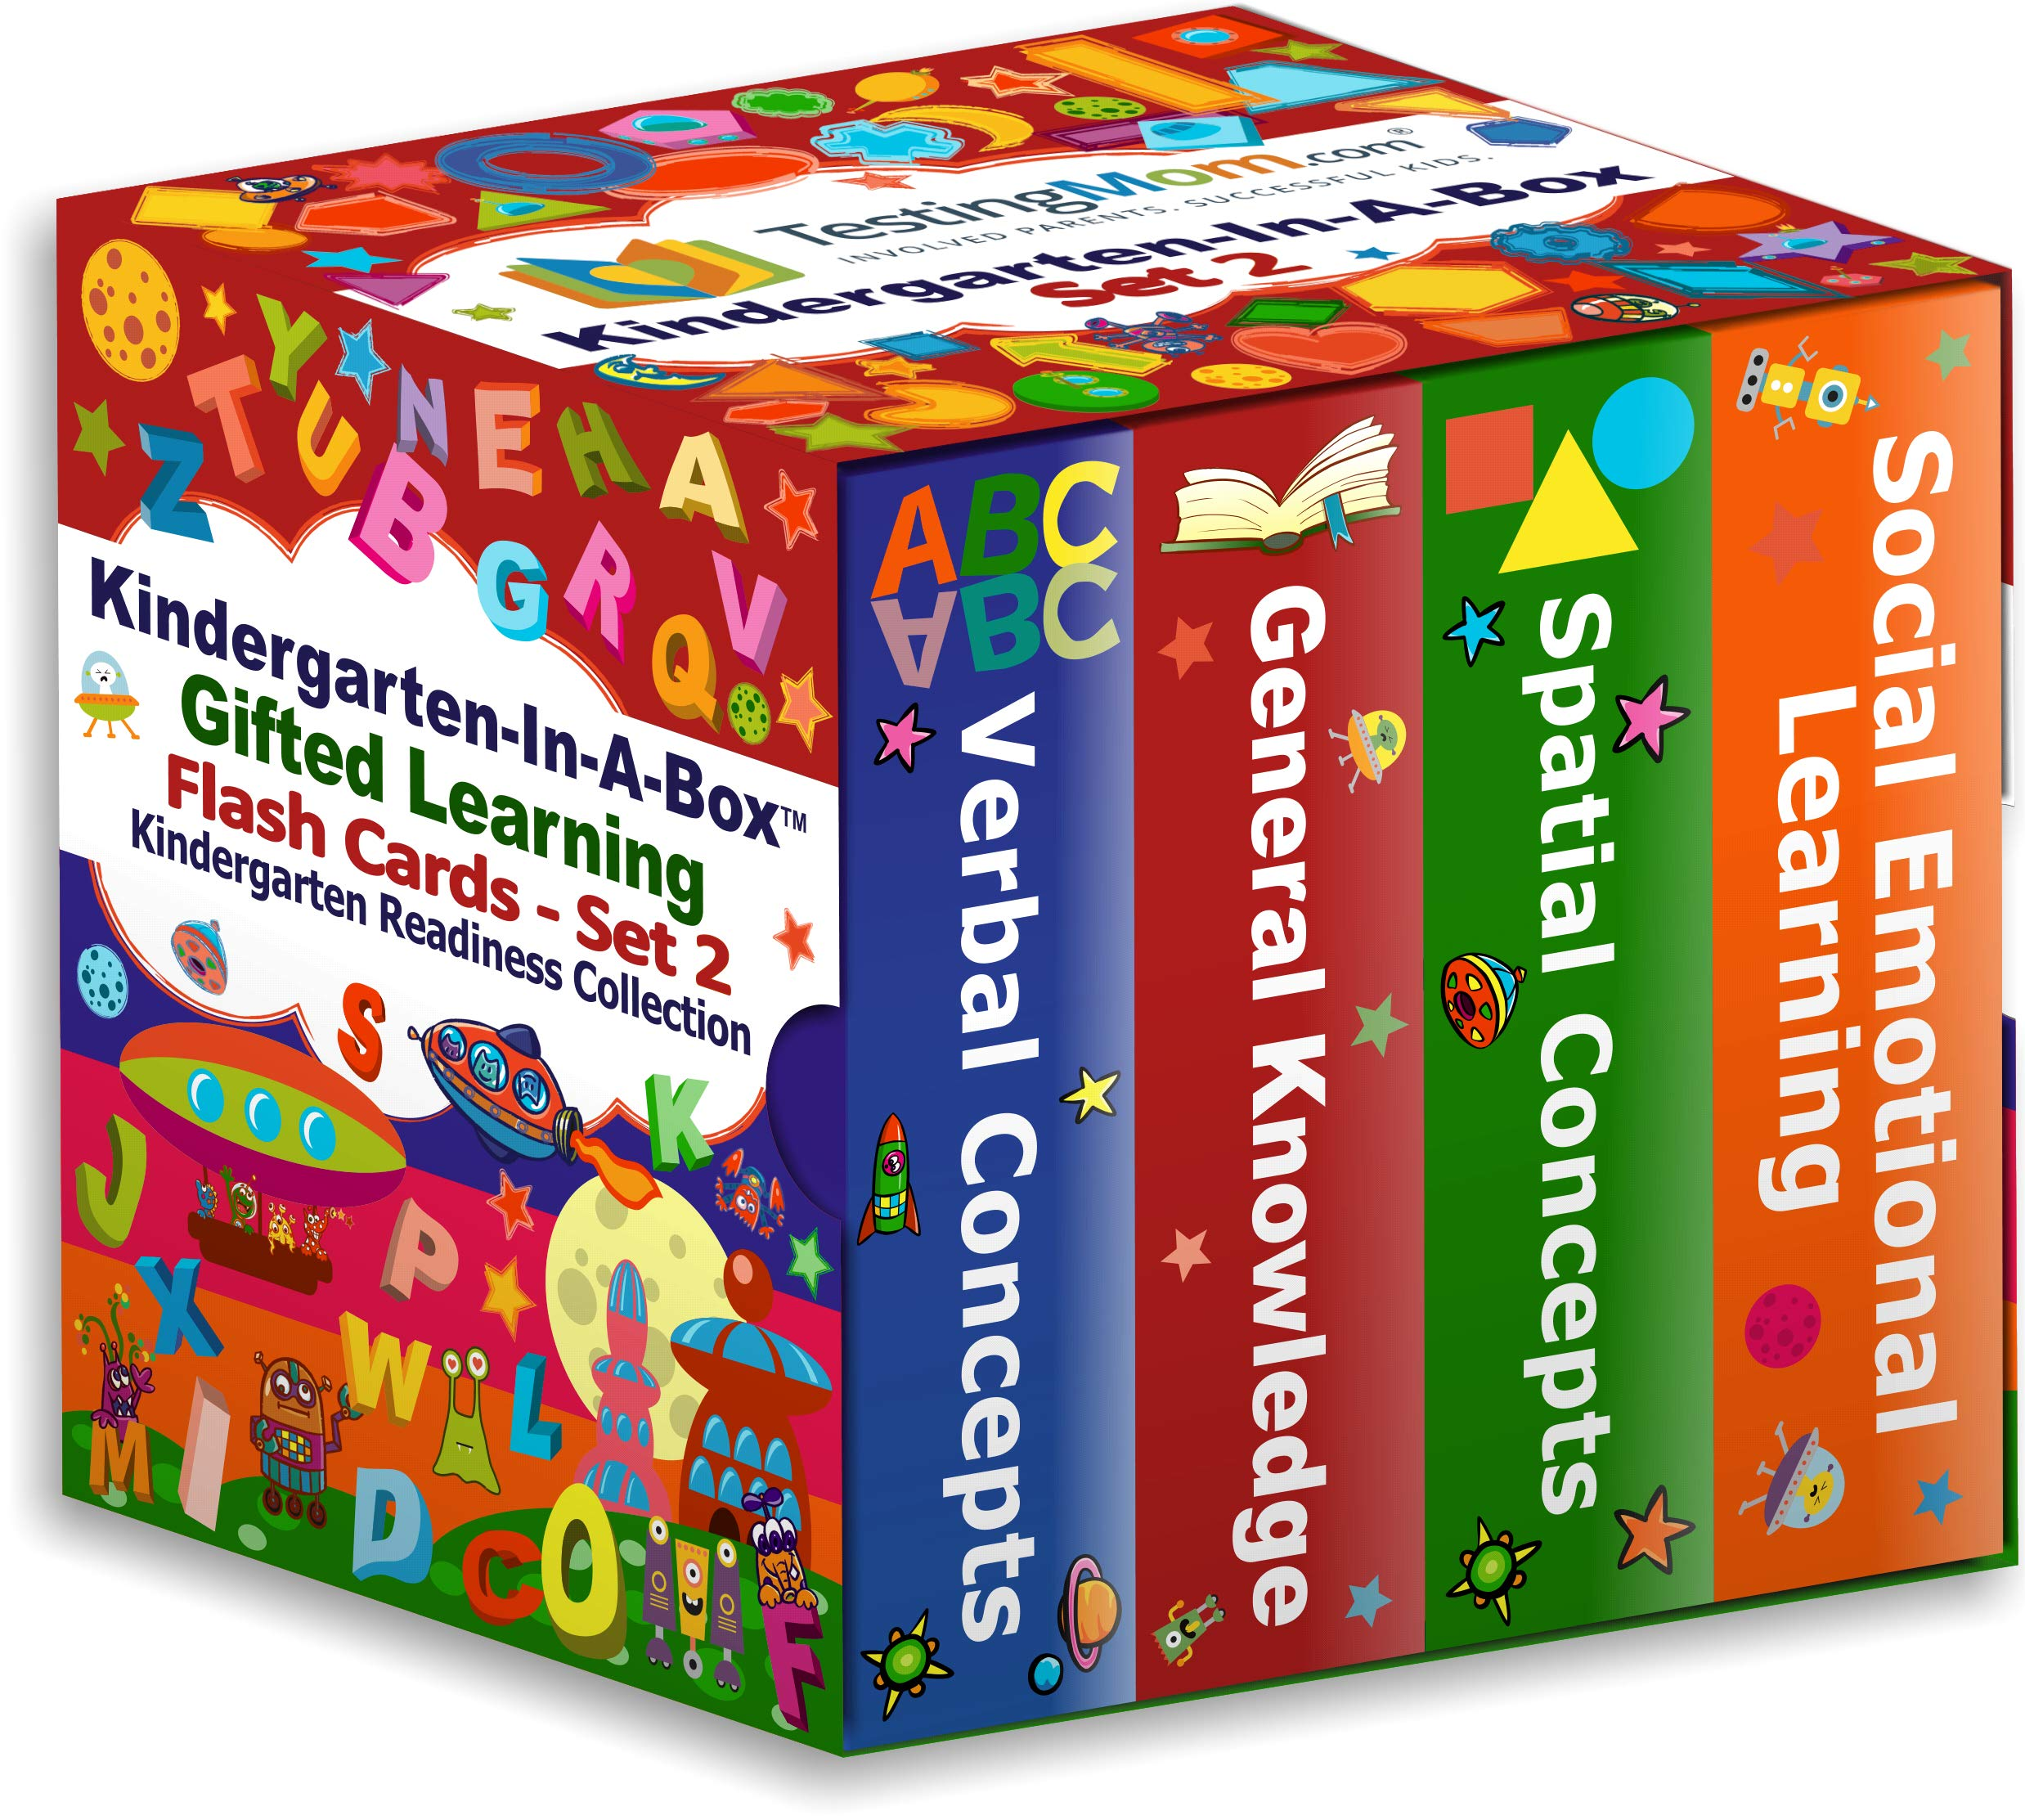 TestingMom.com Gifted Learning Flash Cards Bundle - Kindergarten-in-A-Box Set 2 - Verbal Concepts, General Knowledge, Spatial Concepts, Social Emotional Learning (Set 2) by TestingMom.com